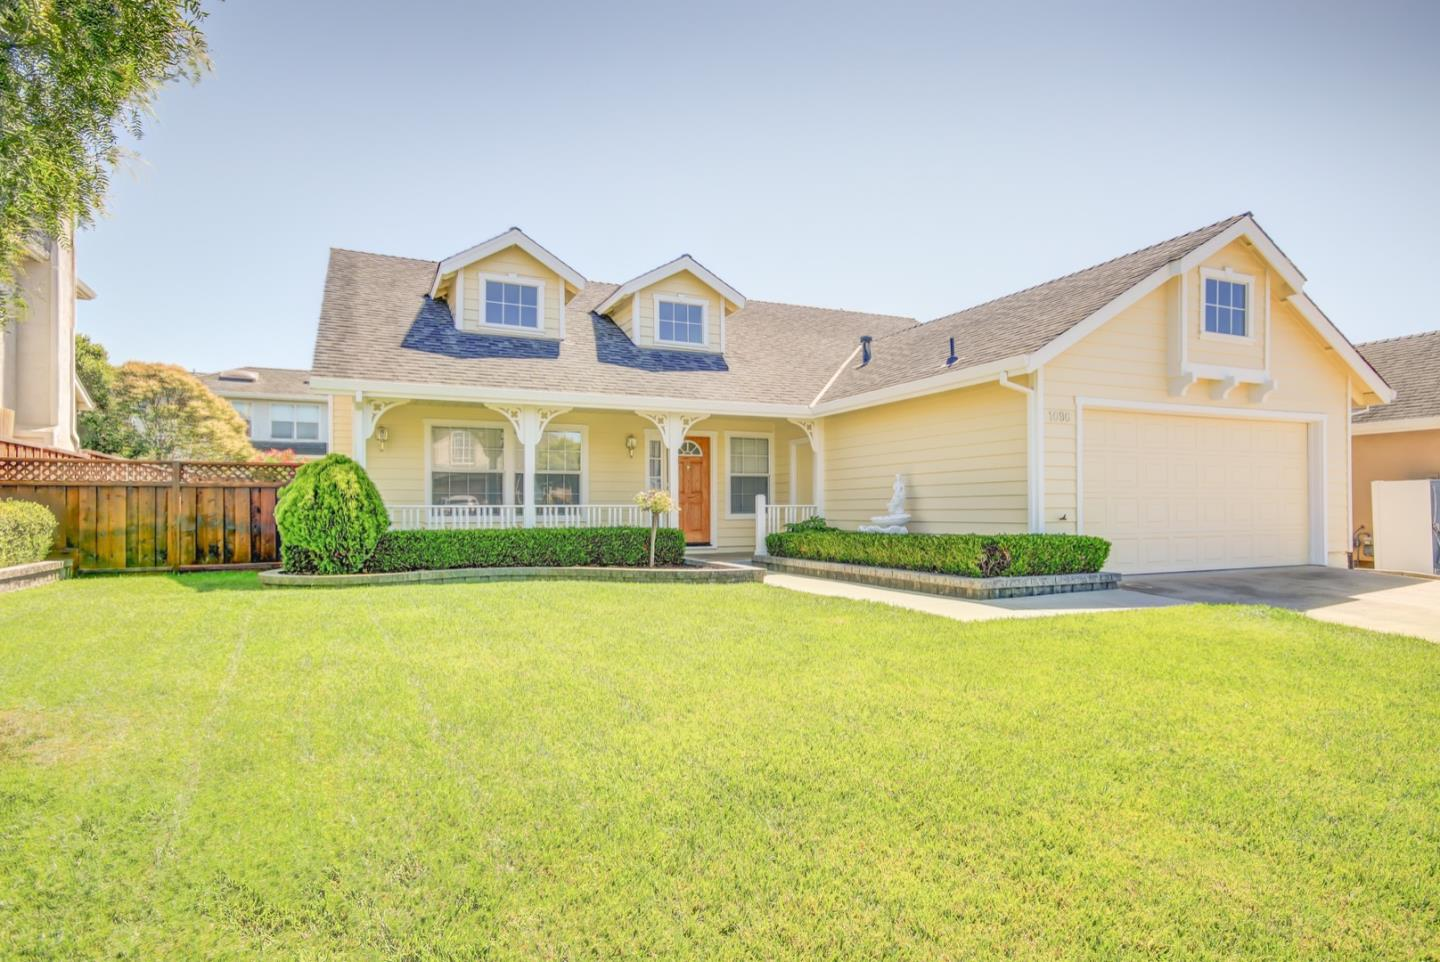 Detail Gallery Image 1 of 23 For 1696 Milton Way, Salinas, CA 93906 - 3 Beds | 2 Baths